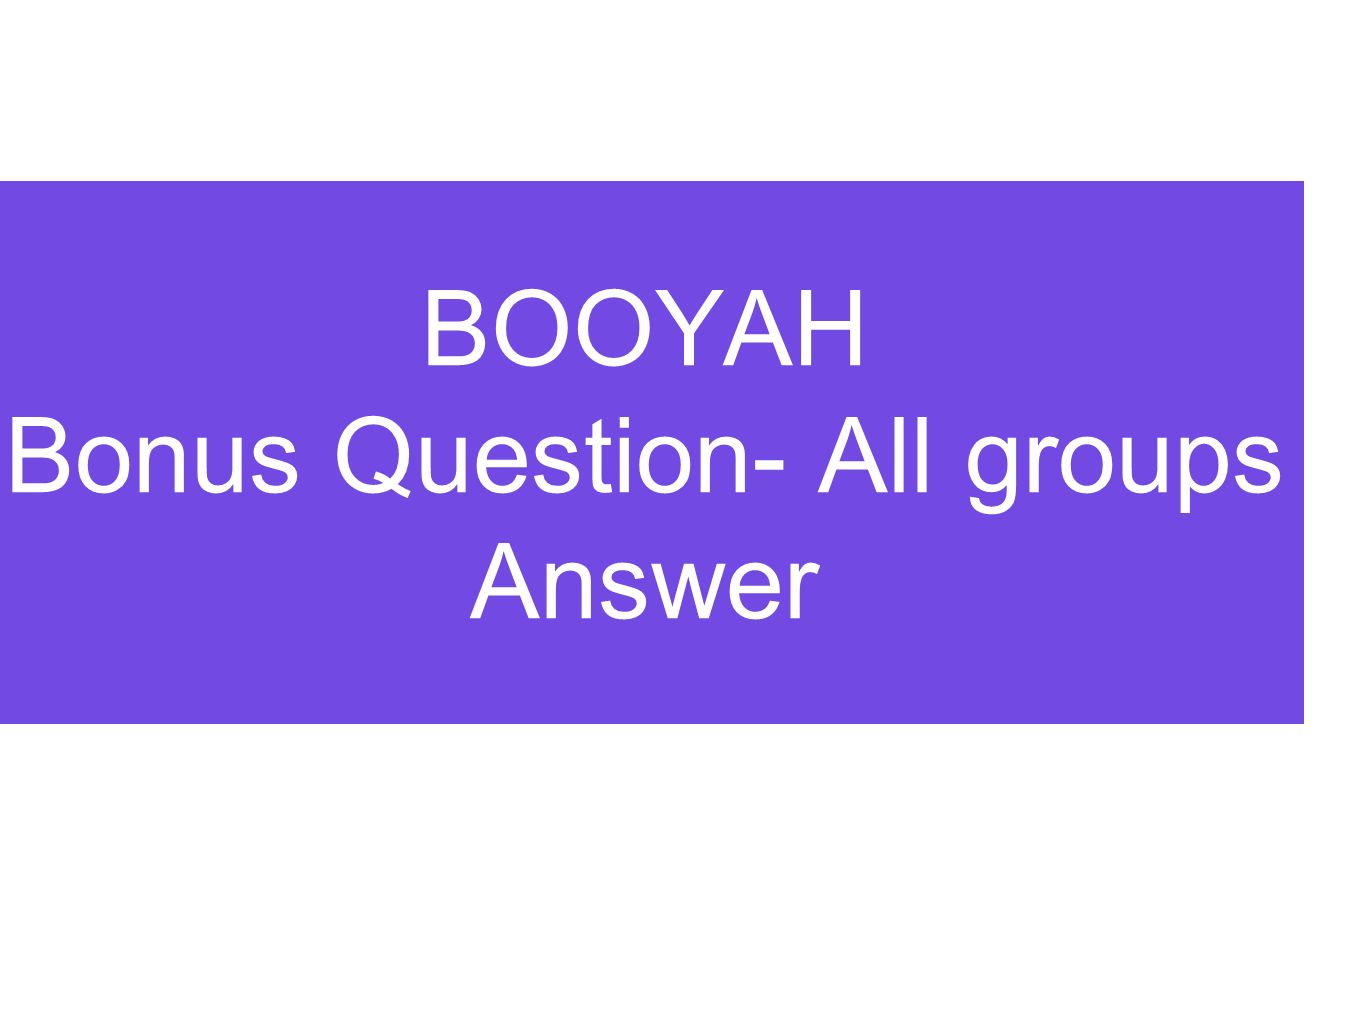 BOOYAH Bonus Question- All groups Answer